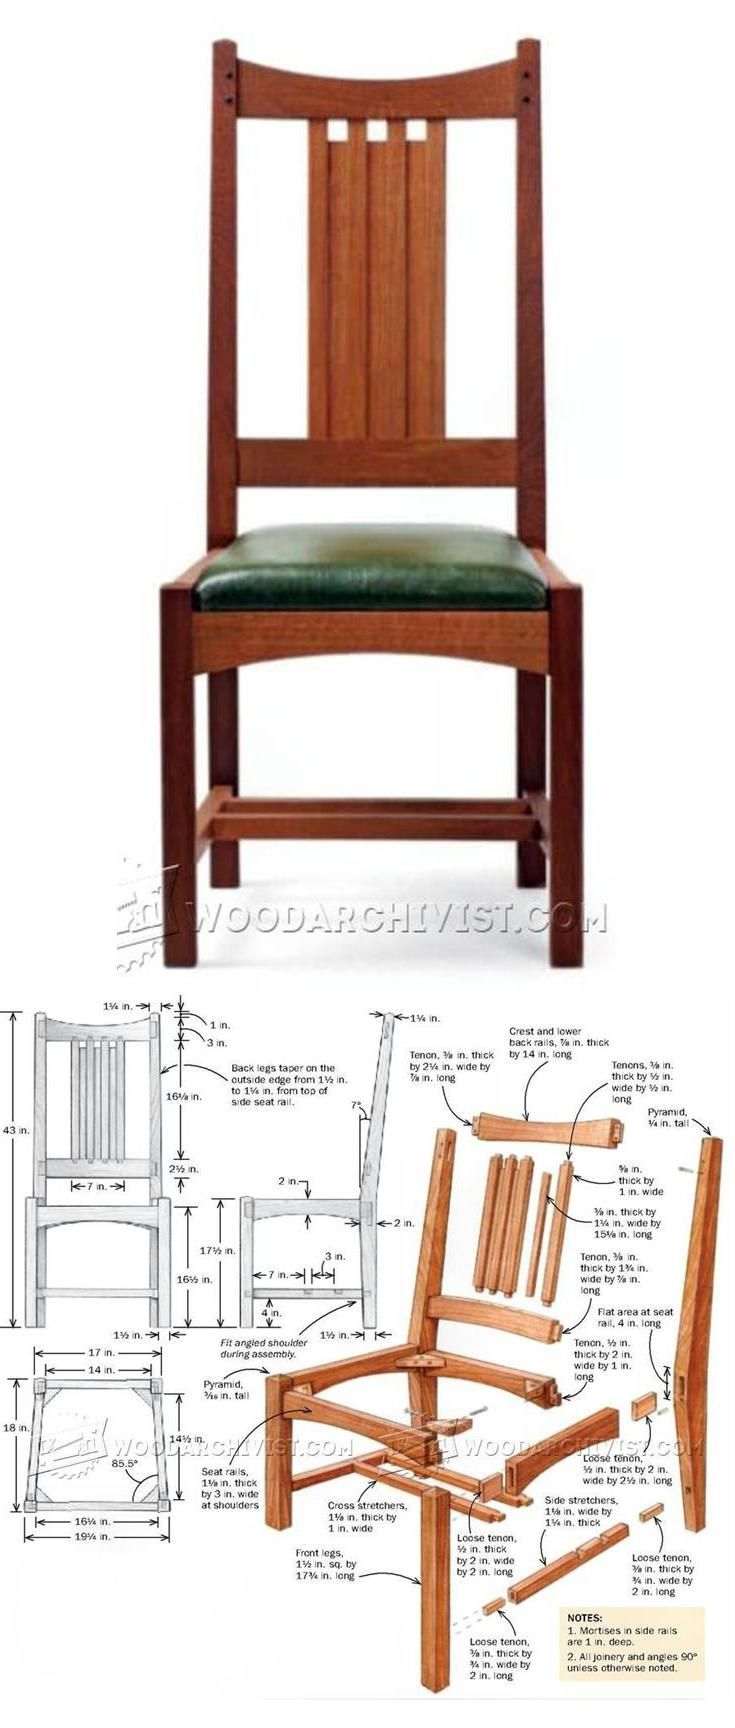 1784 best mission style furniture images on pinterest for Craftsman furniture plans